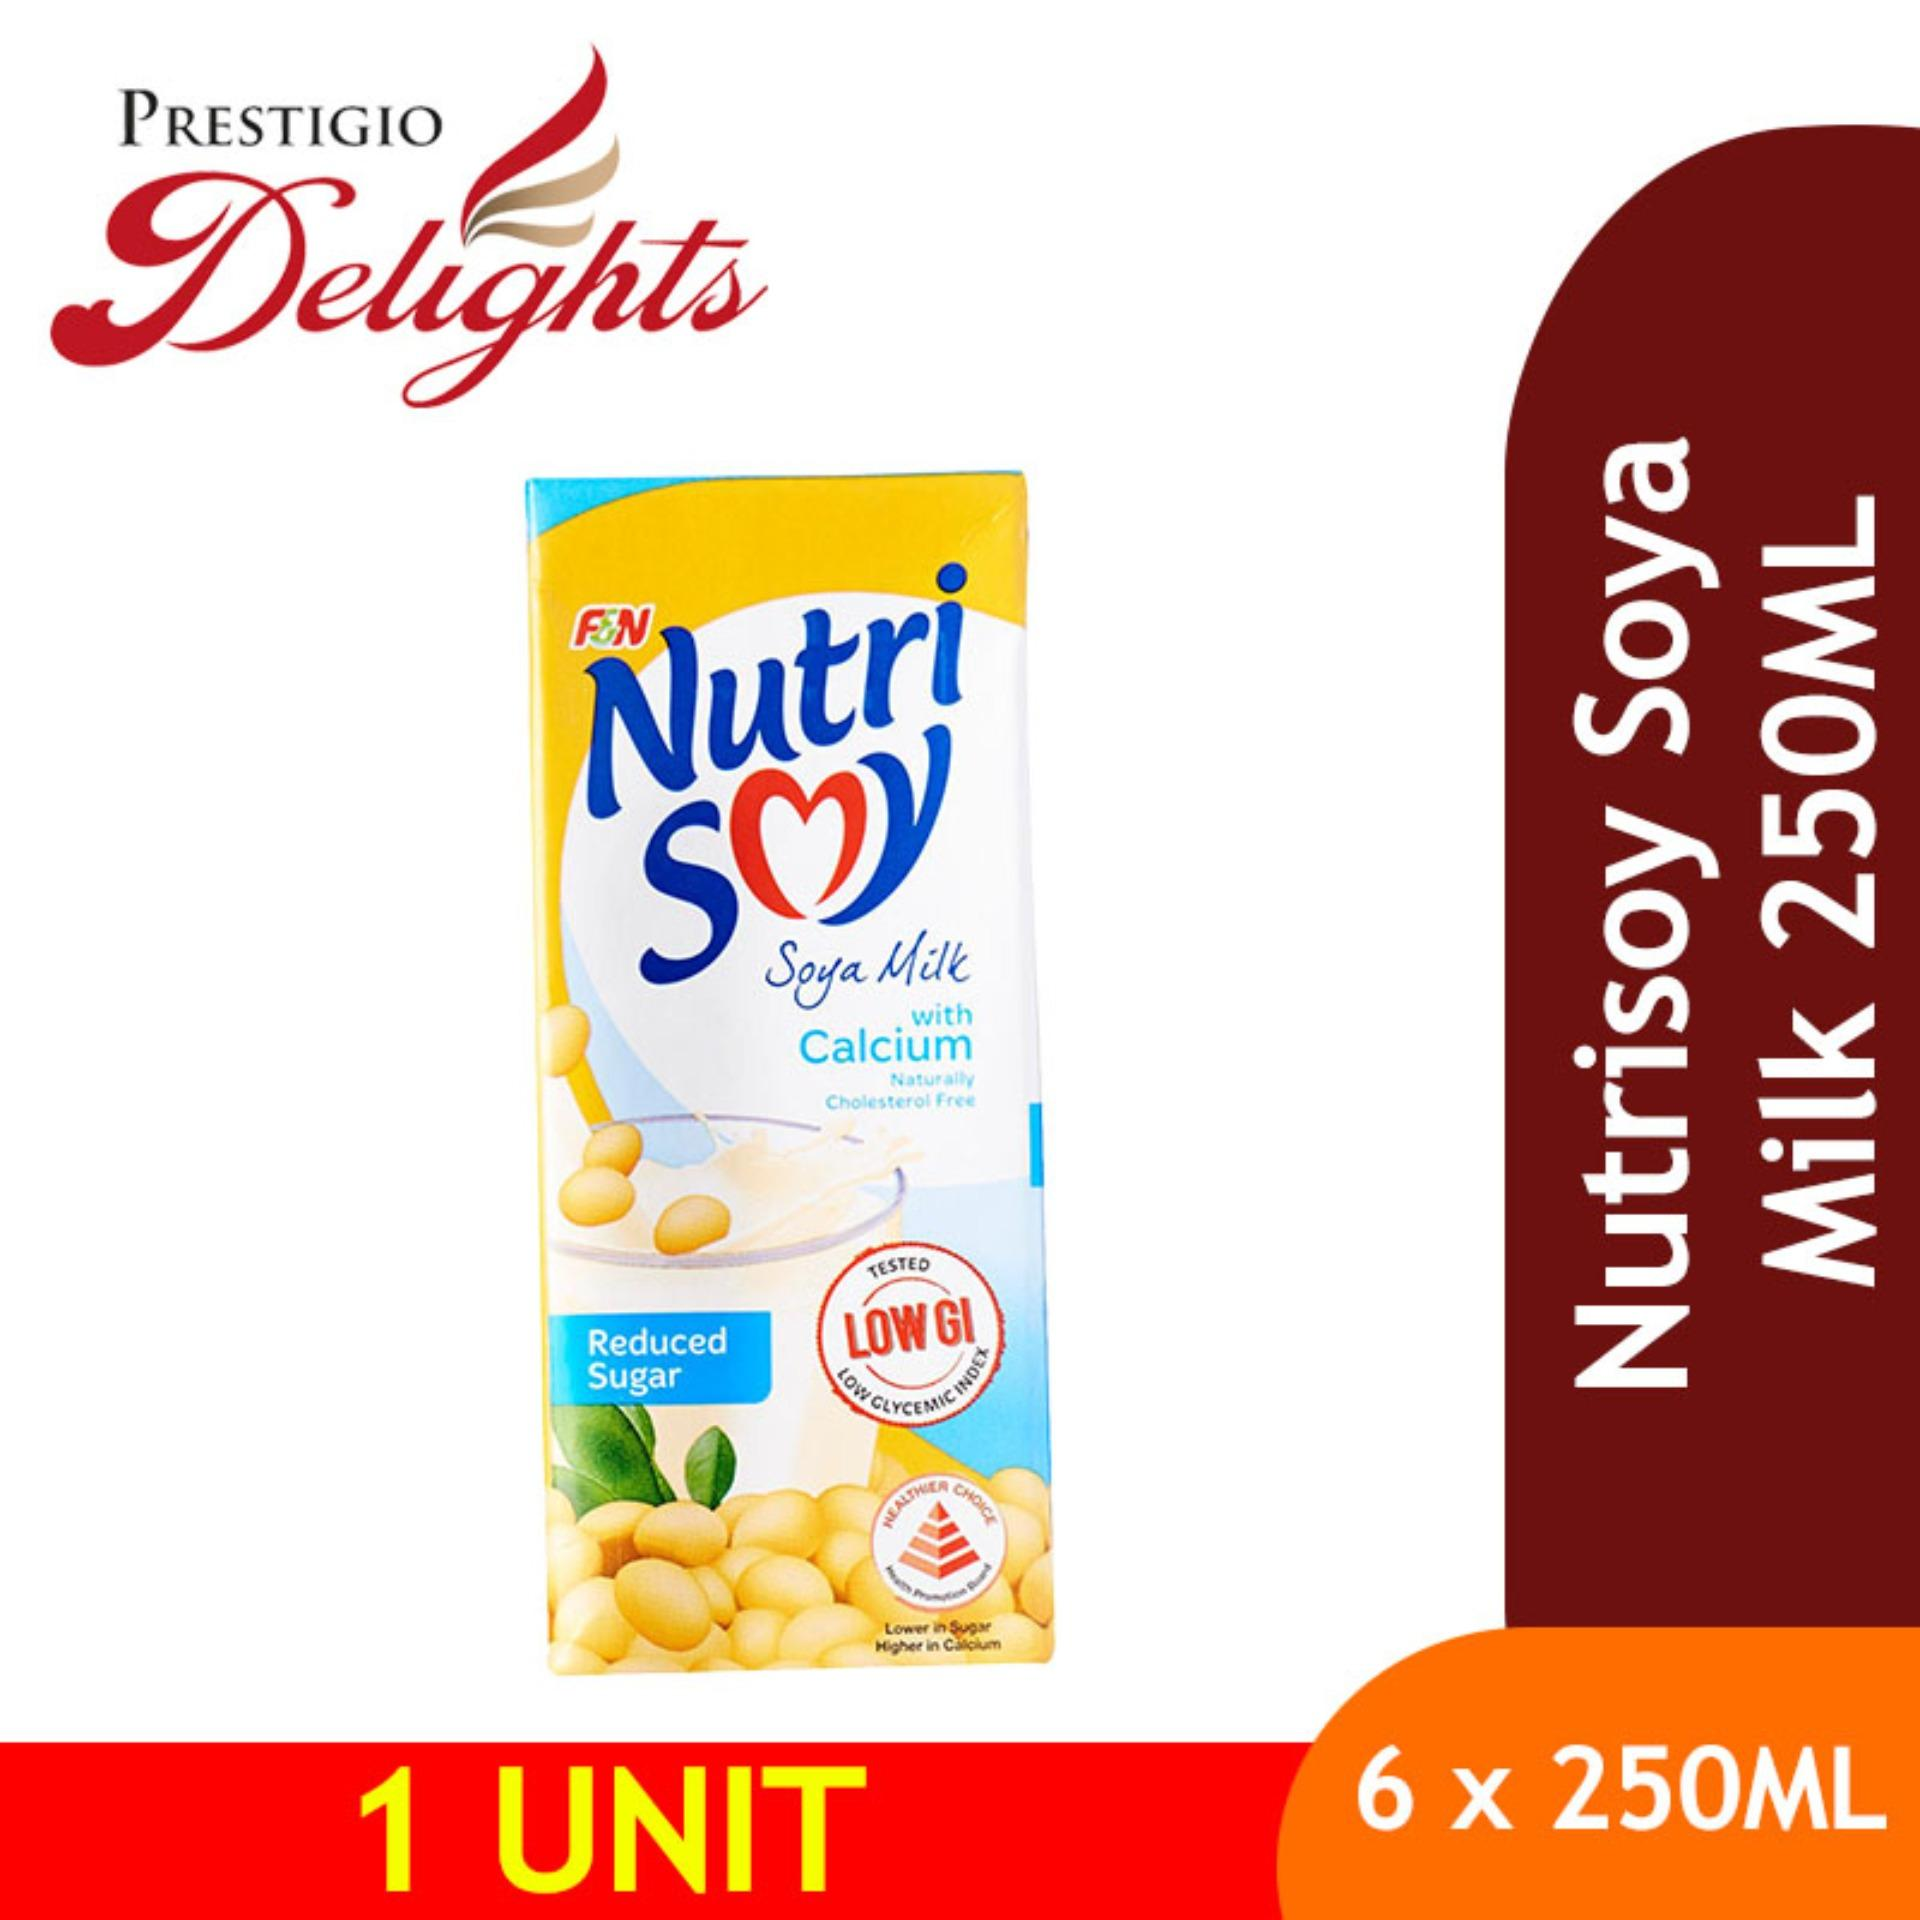 Nutrisoy Soya Milk (6x250ml) By Prestigio Delights.